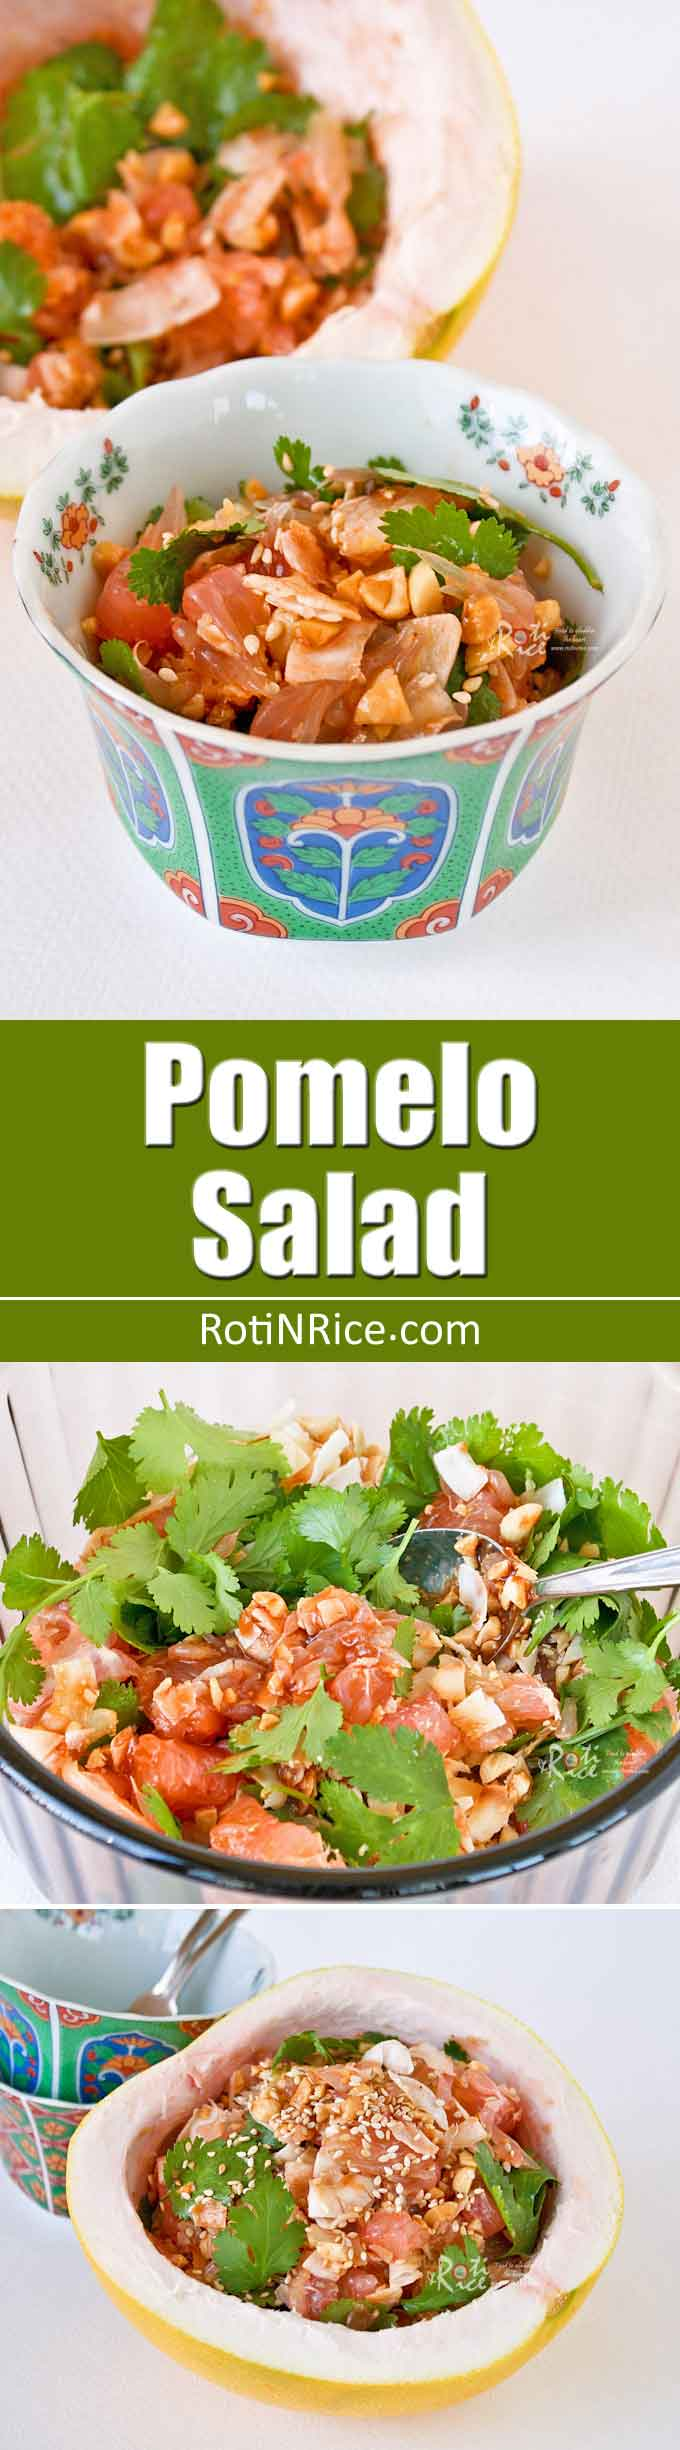 This delicious Pomelo Salad with chopped peanuts and toasted coconut flakes is a must-try! It is sweet, tangy, juicy, and refreshing. | RotiNRice.com